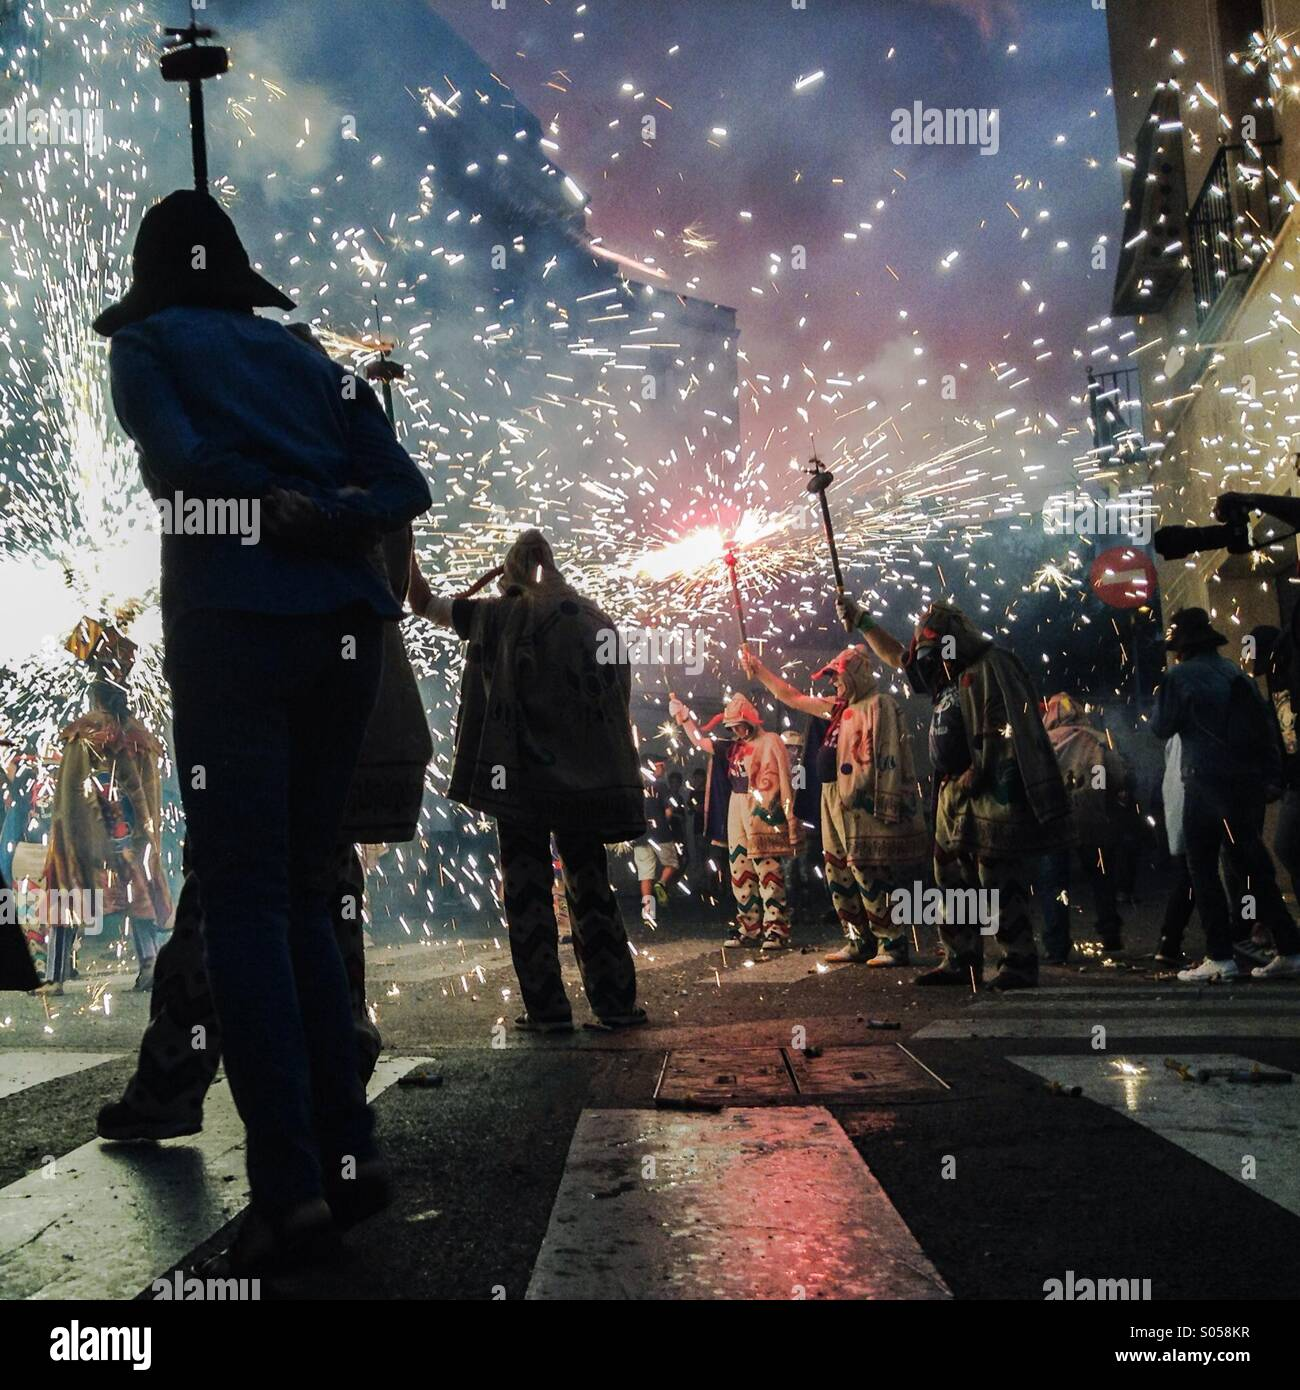 Correfoc, fireworks, Les Santes, Mataró. Barcelona. Fire games in Catalonia - Stock Image